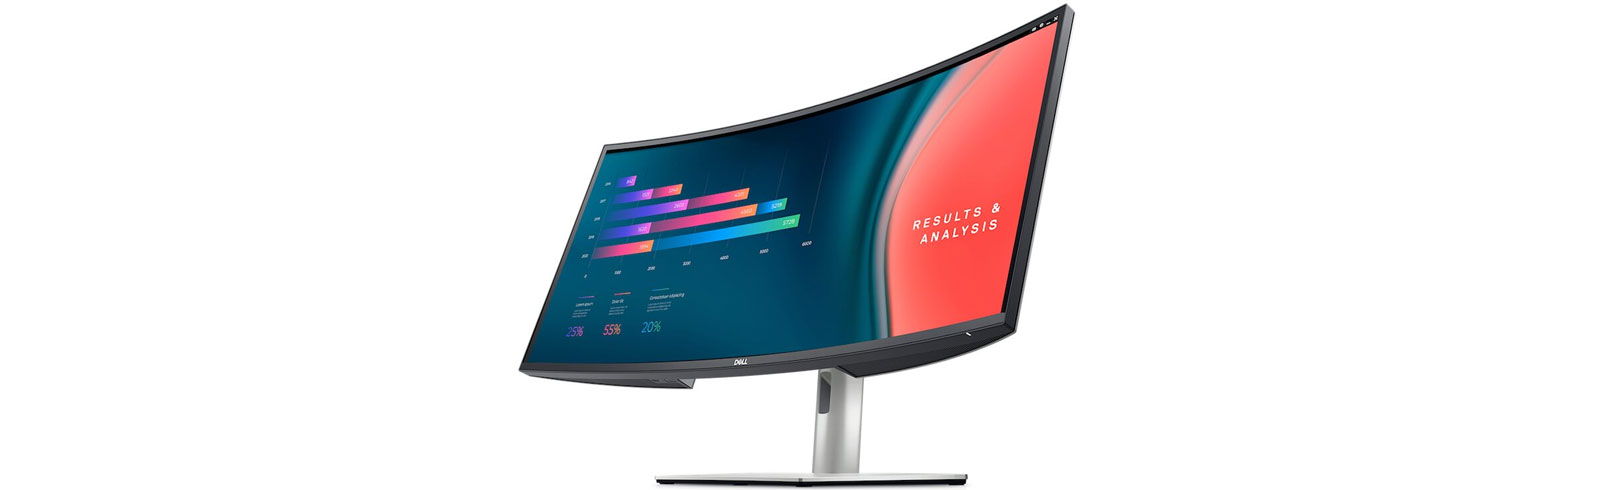 """The 34"""" Dell U3421WE UltraSharp monitor is announced with a WQHD resolution and 1900R curve"""